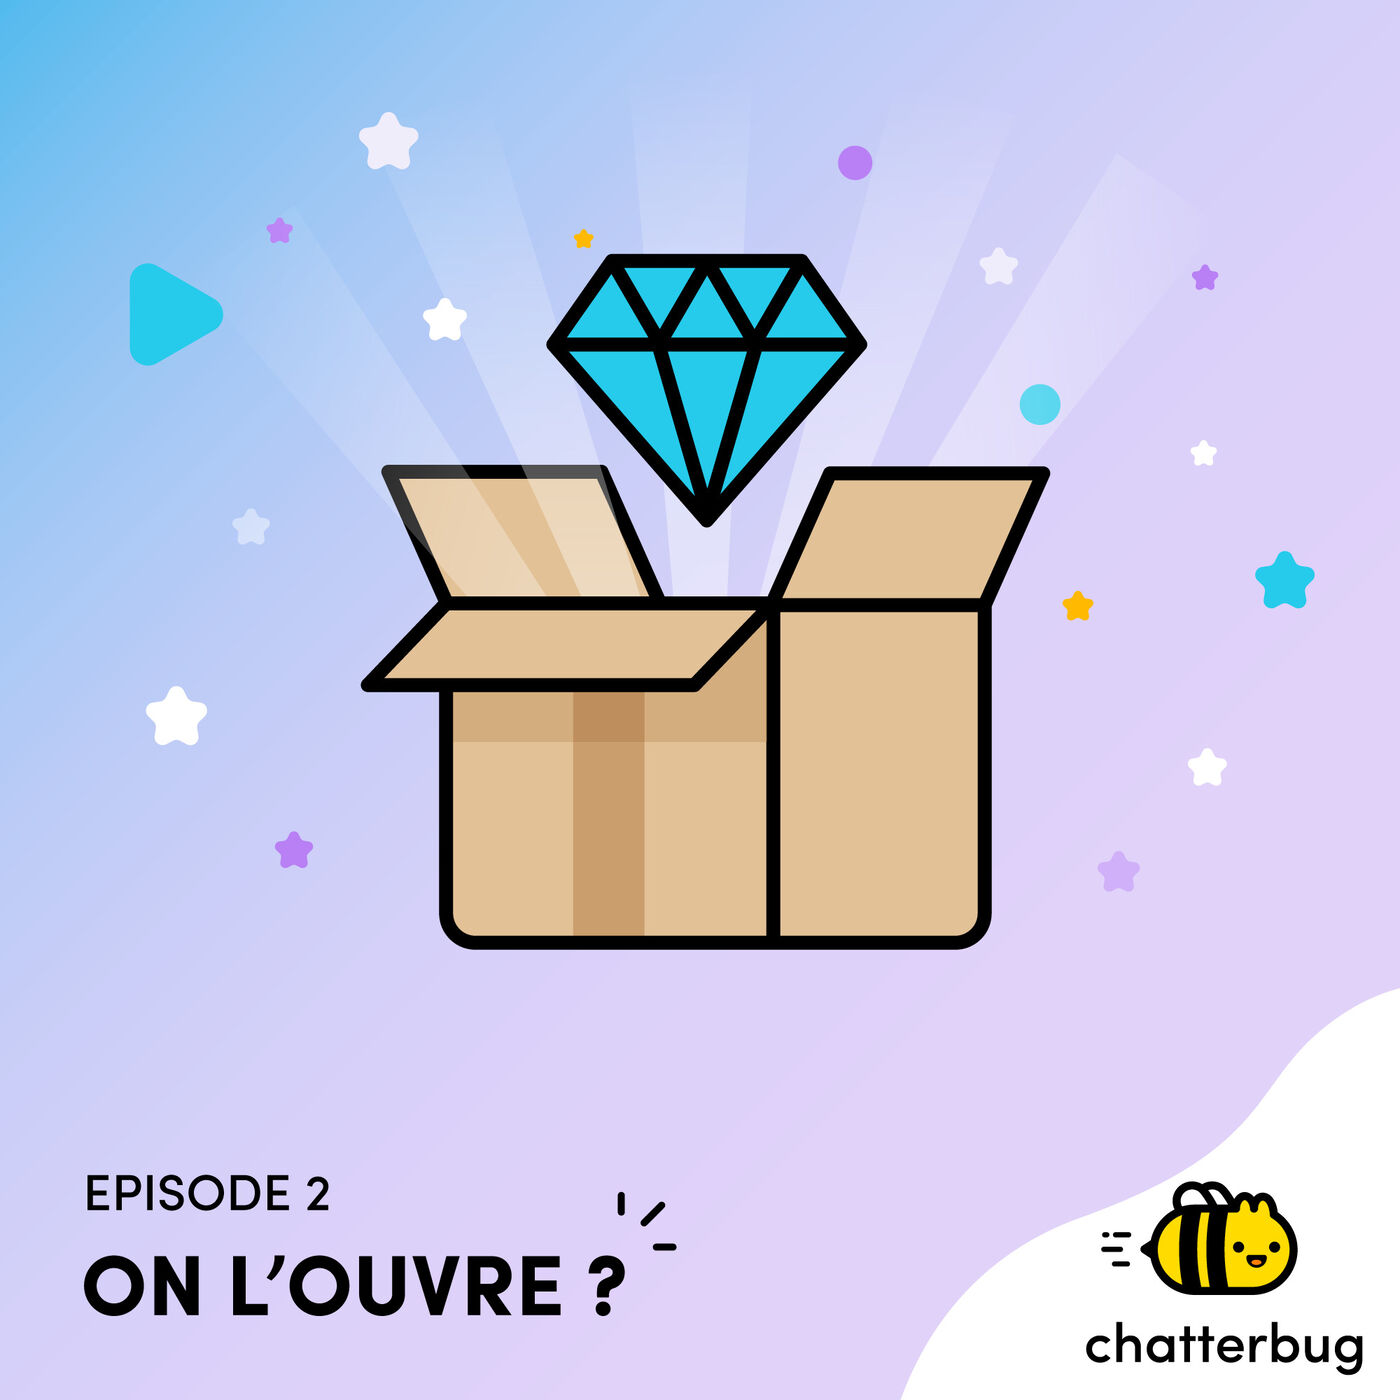 Episode 2 - On l'ouvre ?